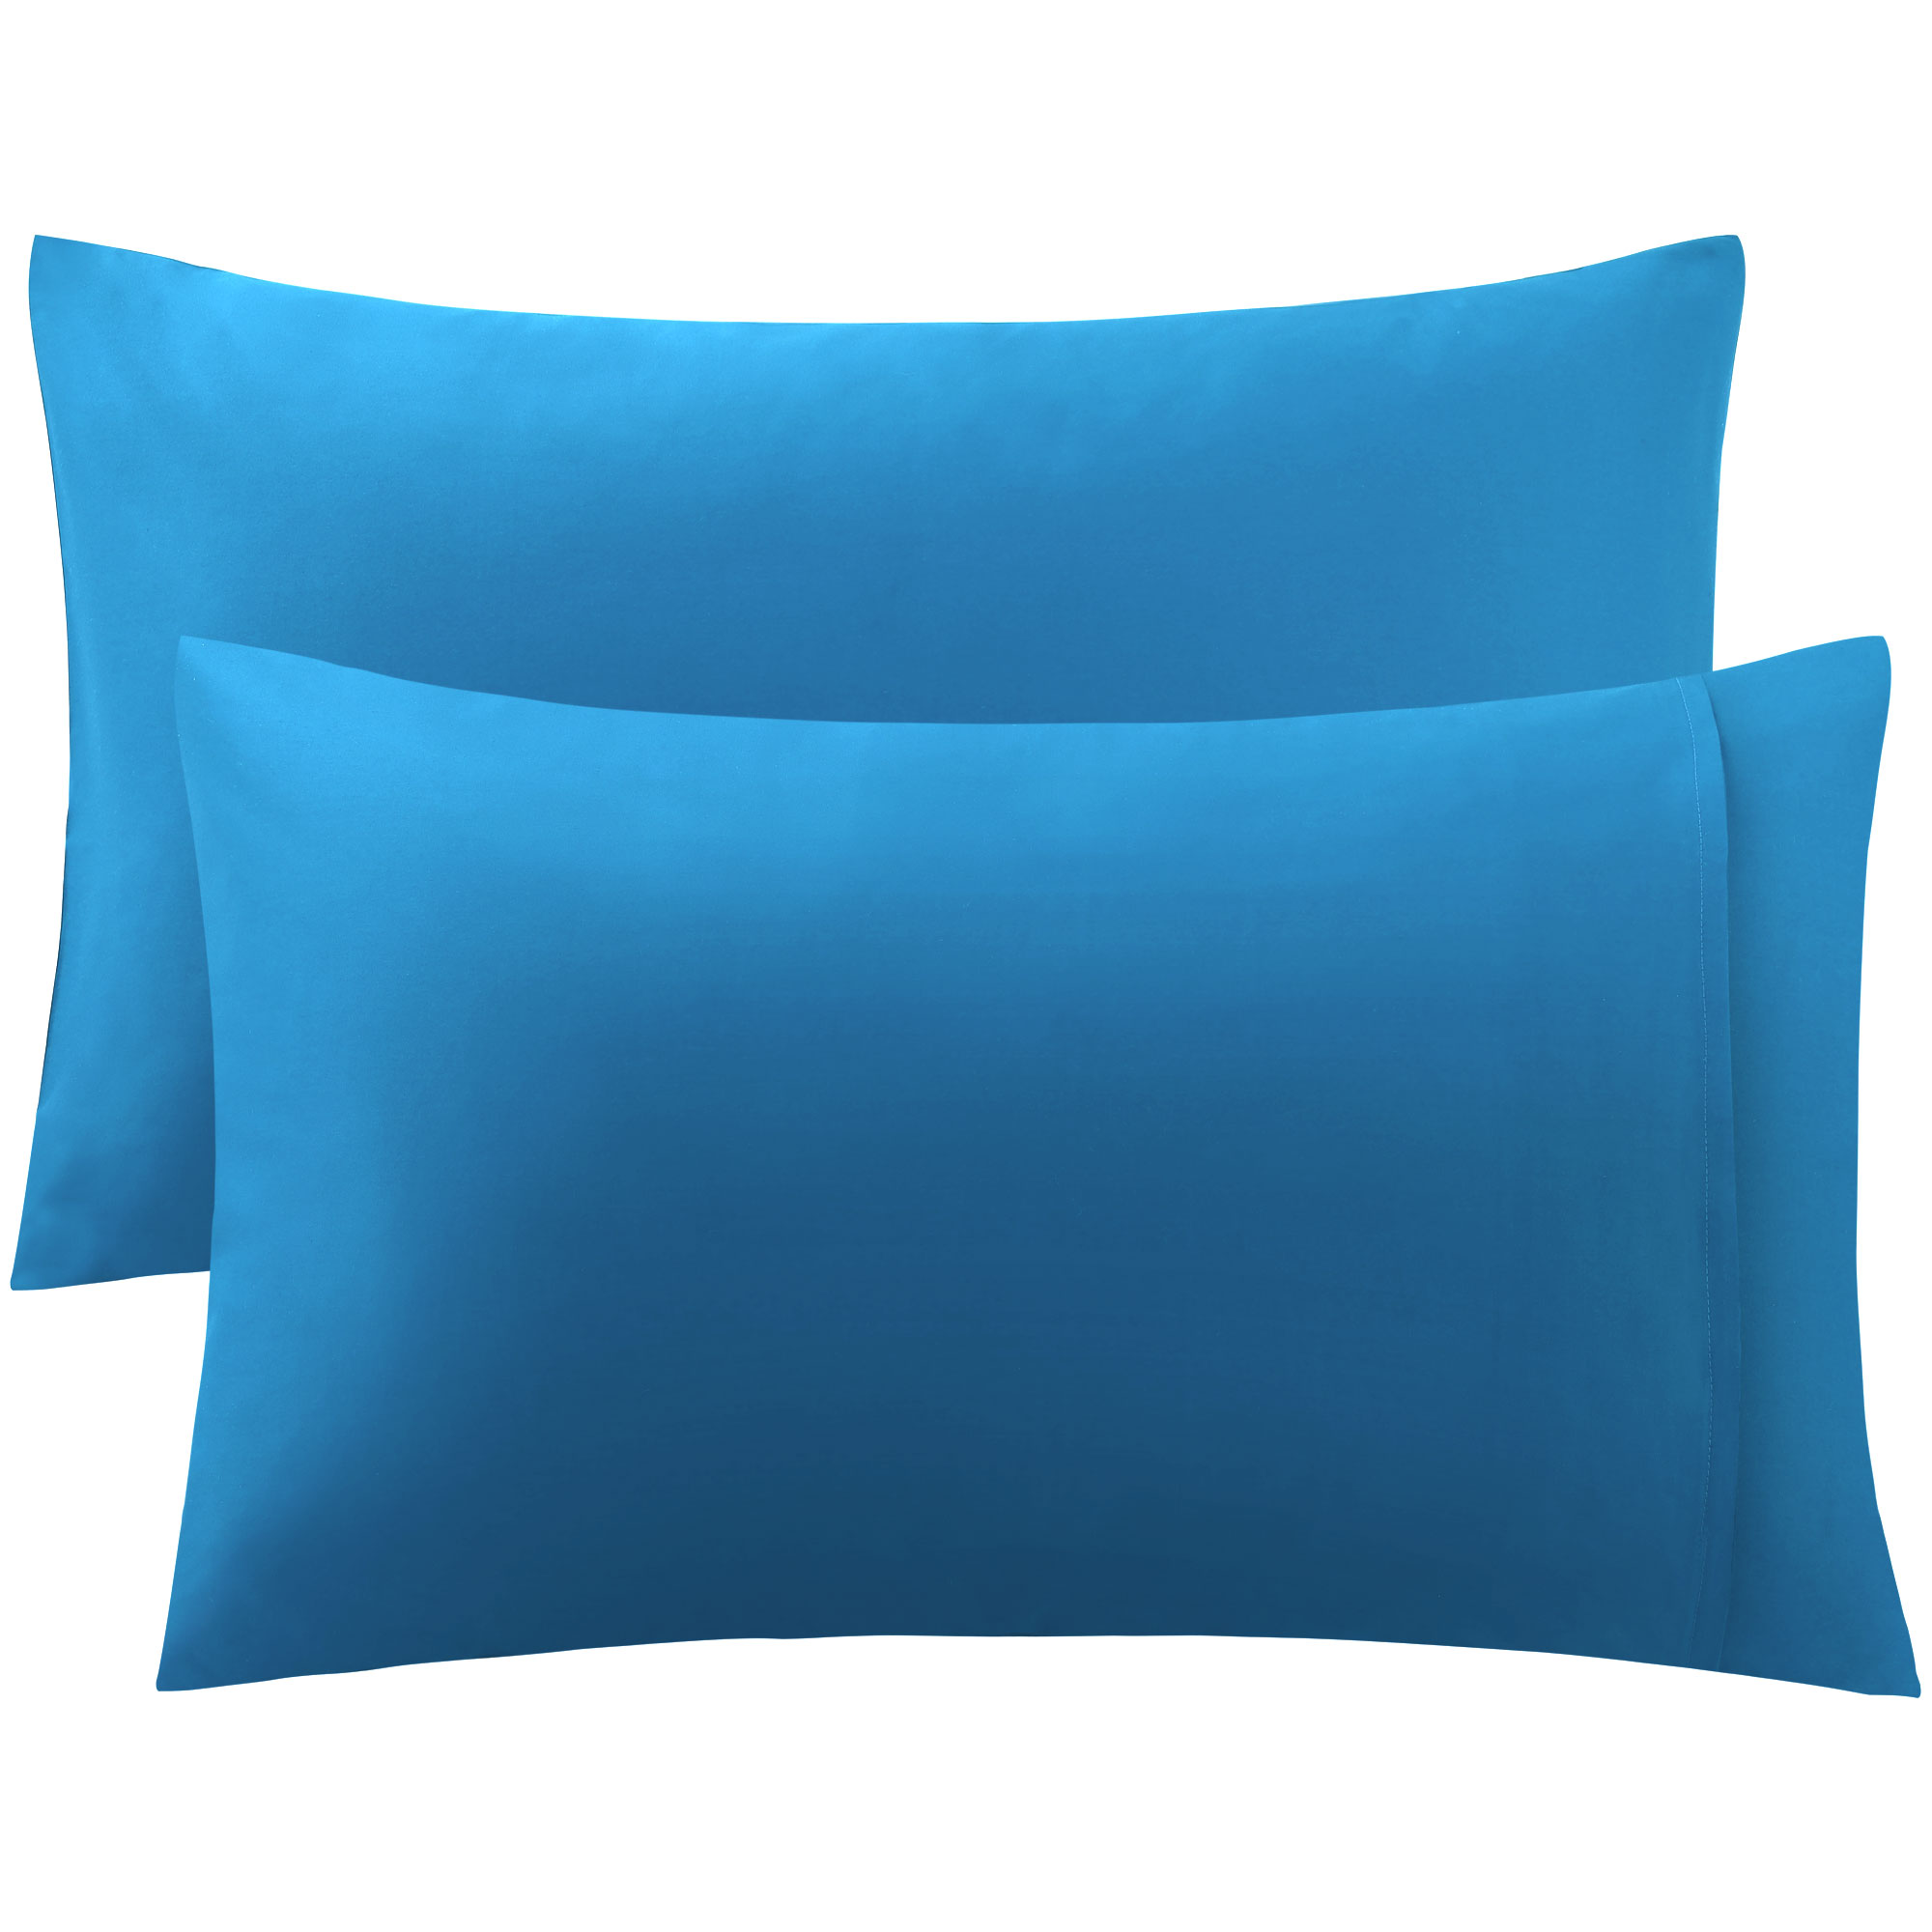 PiccoCasa 300 Thread Count Egyptian Cotton King Size Pillowcases Pillow Cases Covers Set of 2 Blue